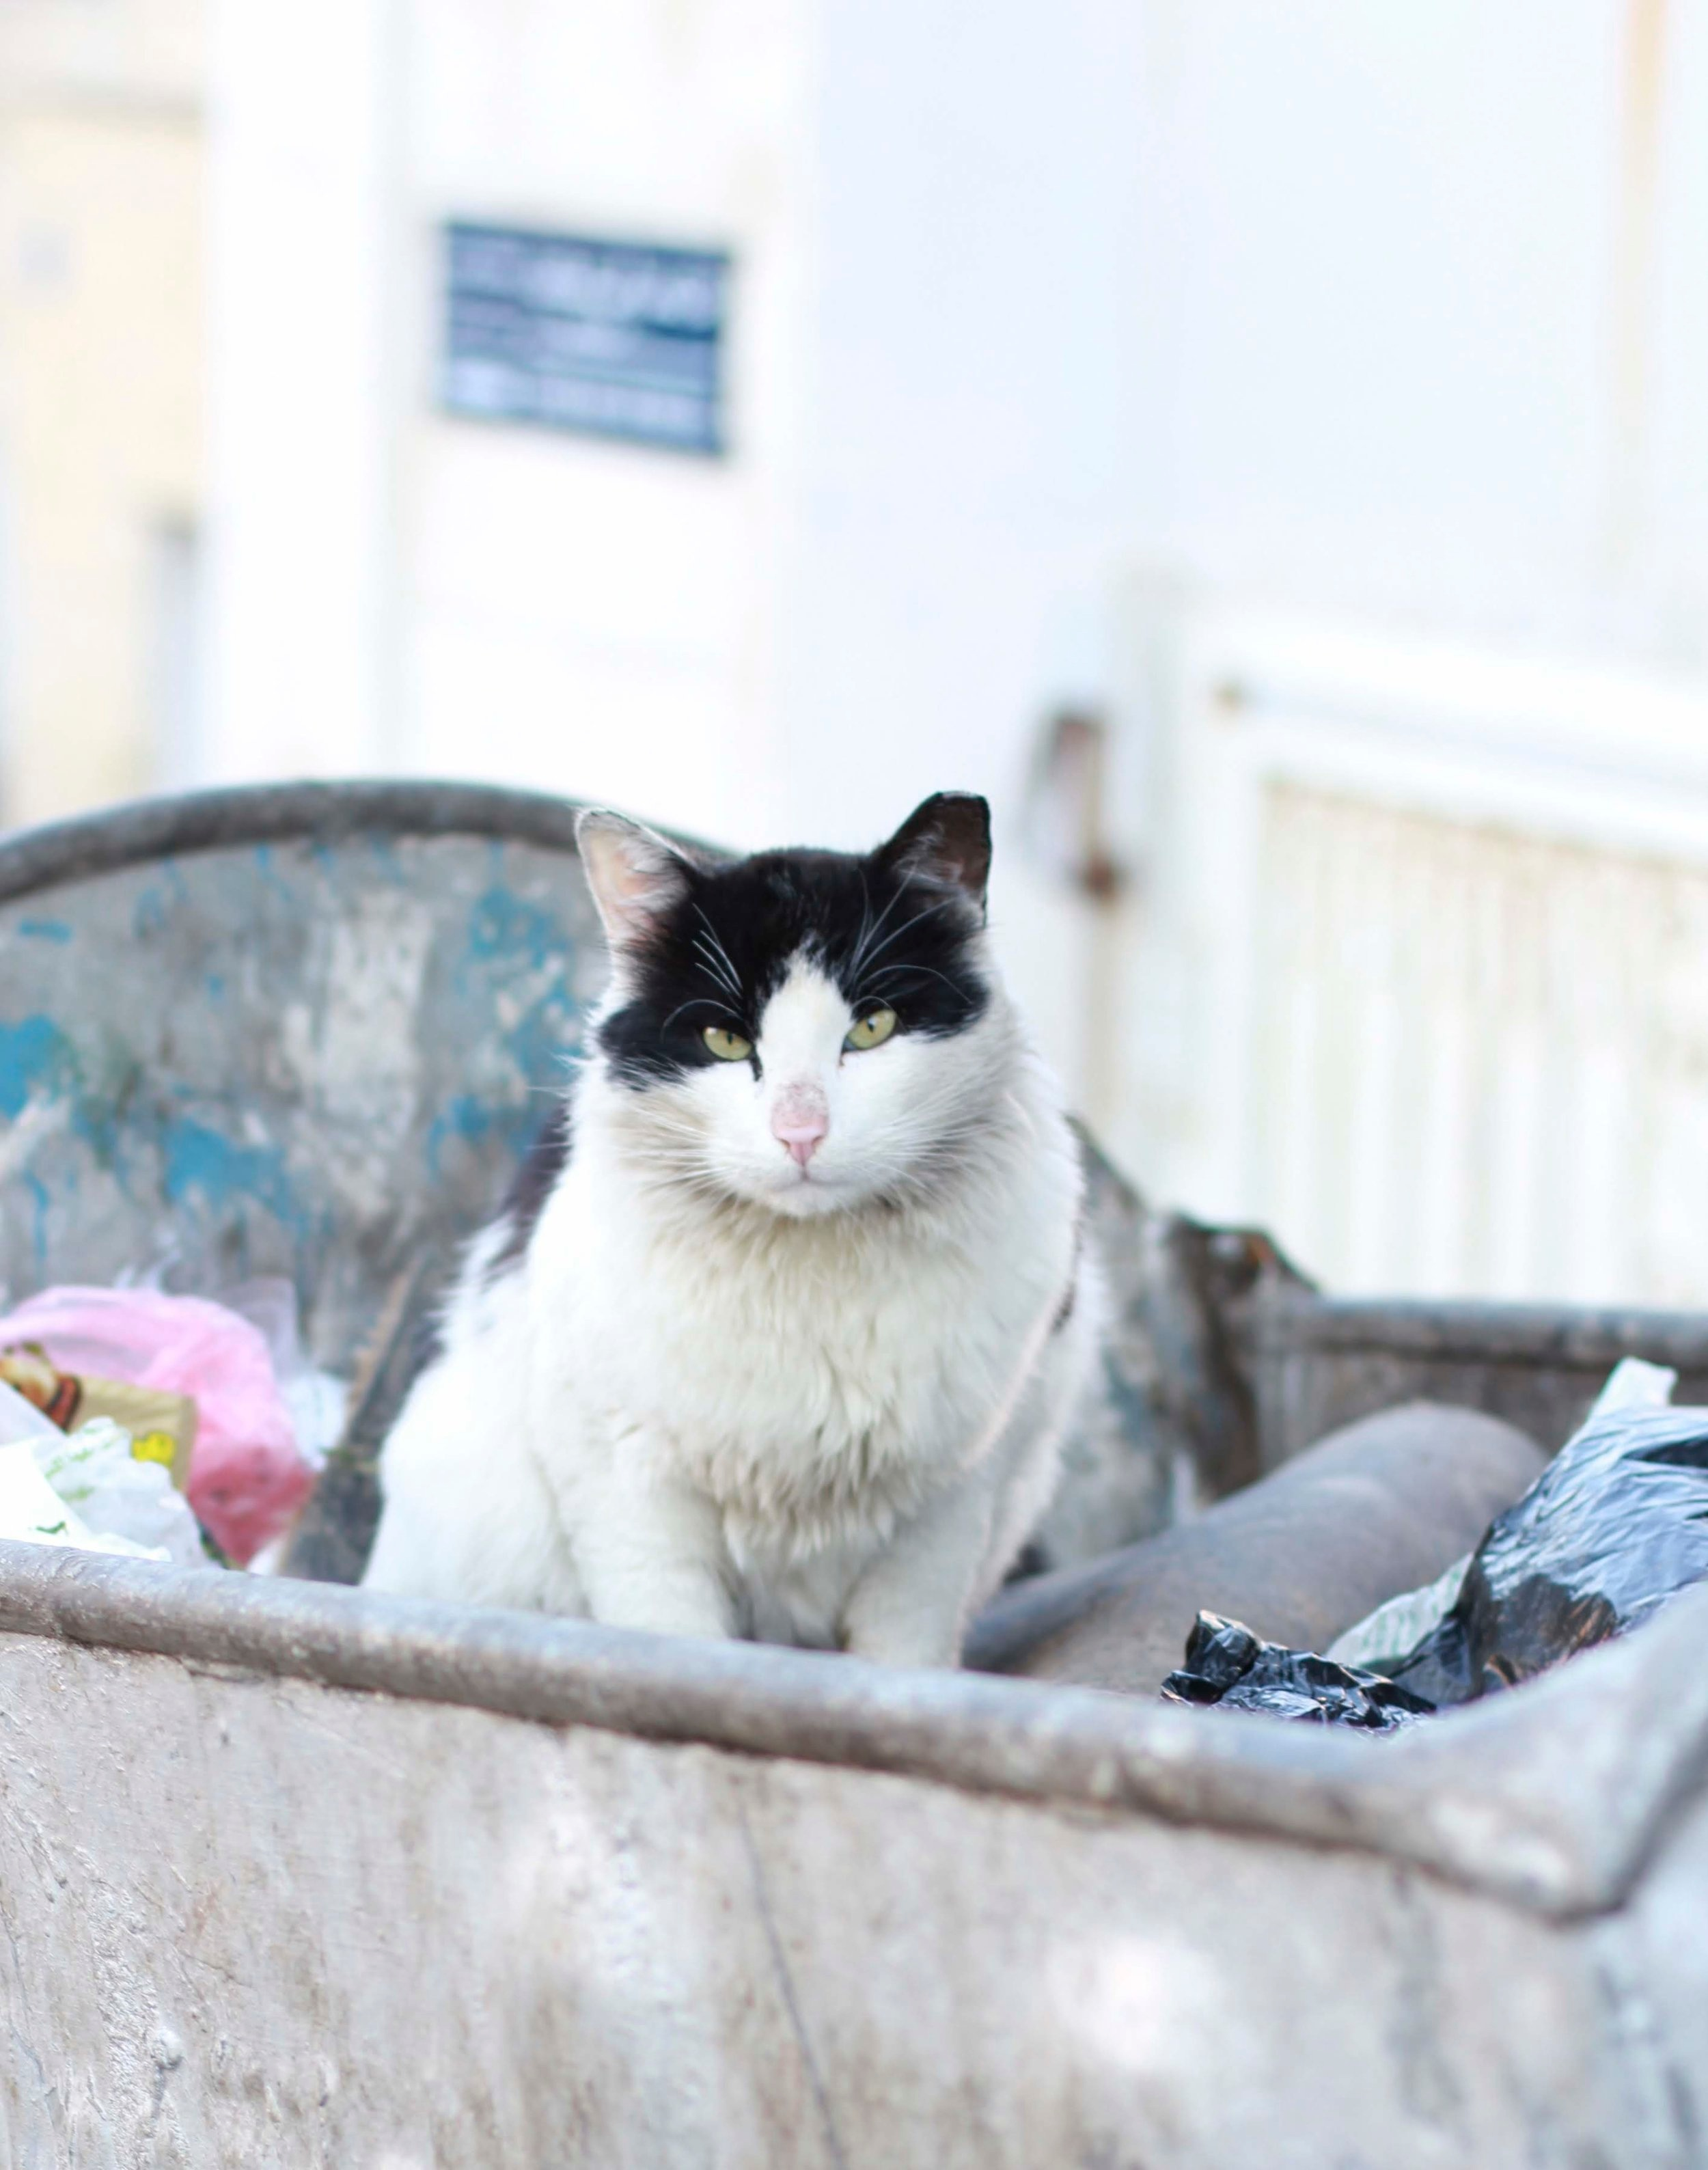 This beautiful Jordanian stray cat is one of the beneficiaries of the trap, neuter and return program implemented by The Basboos Project. Image ©The Basboos Project